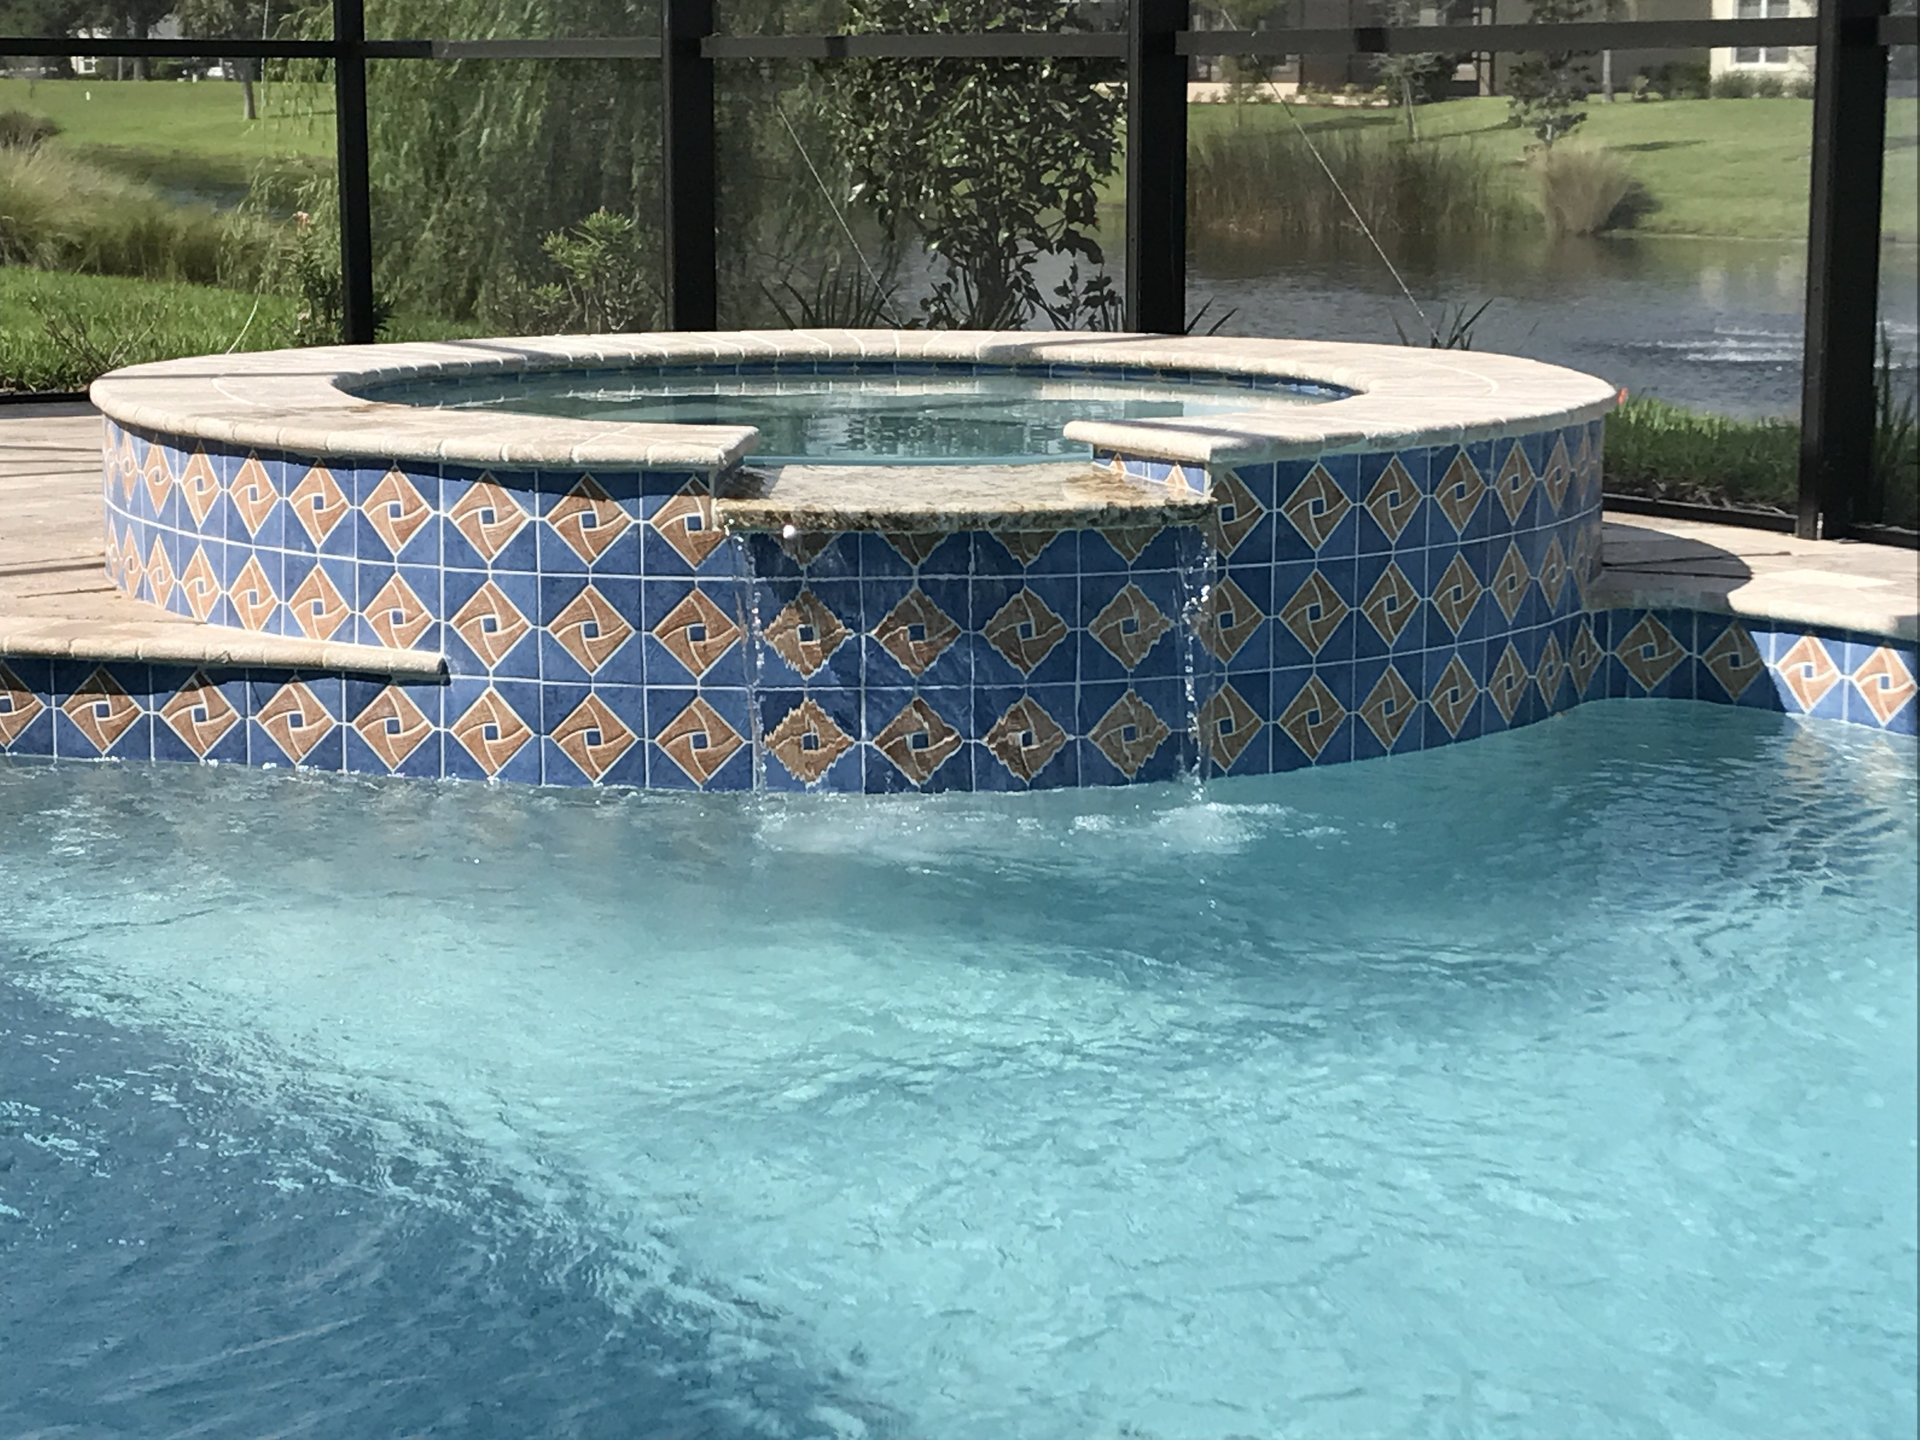 Waldhauer son in palm coast fl swimming pool for Pool dealers